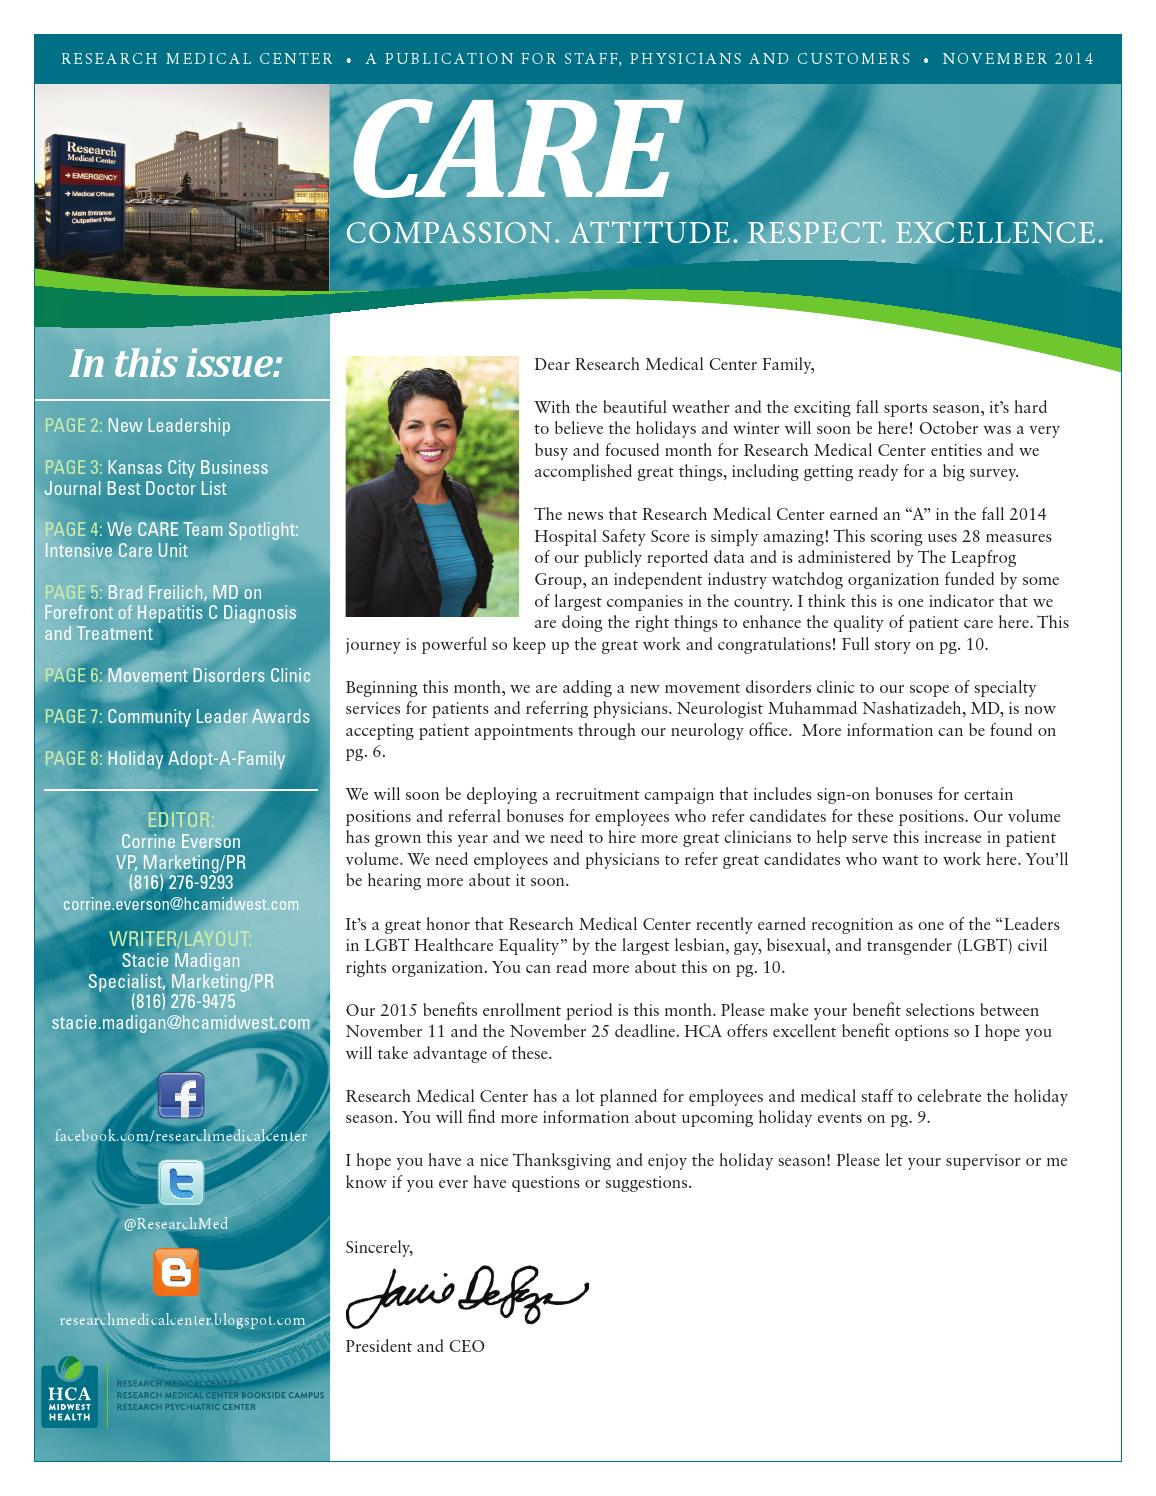 2016 kenmore mercy hospital nursing annual report by catholic research medical center november care newsletter fandeluxe Choice Image